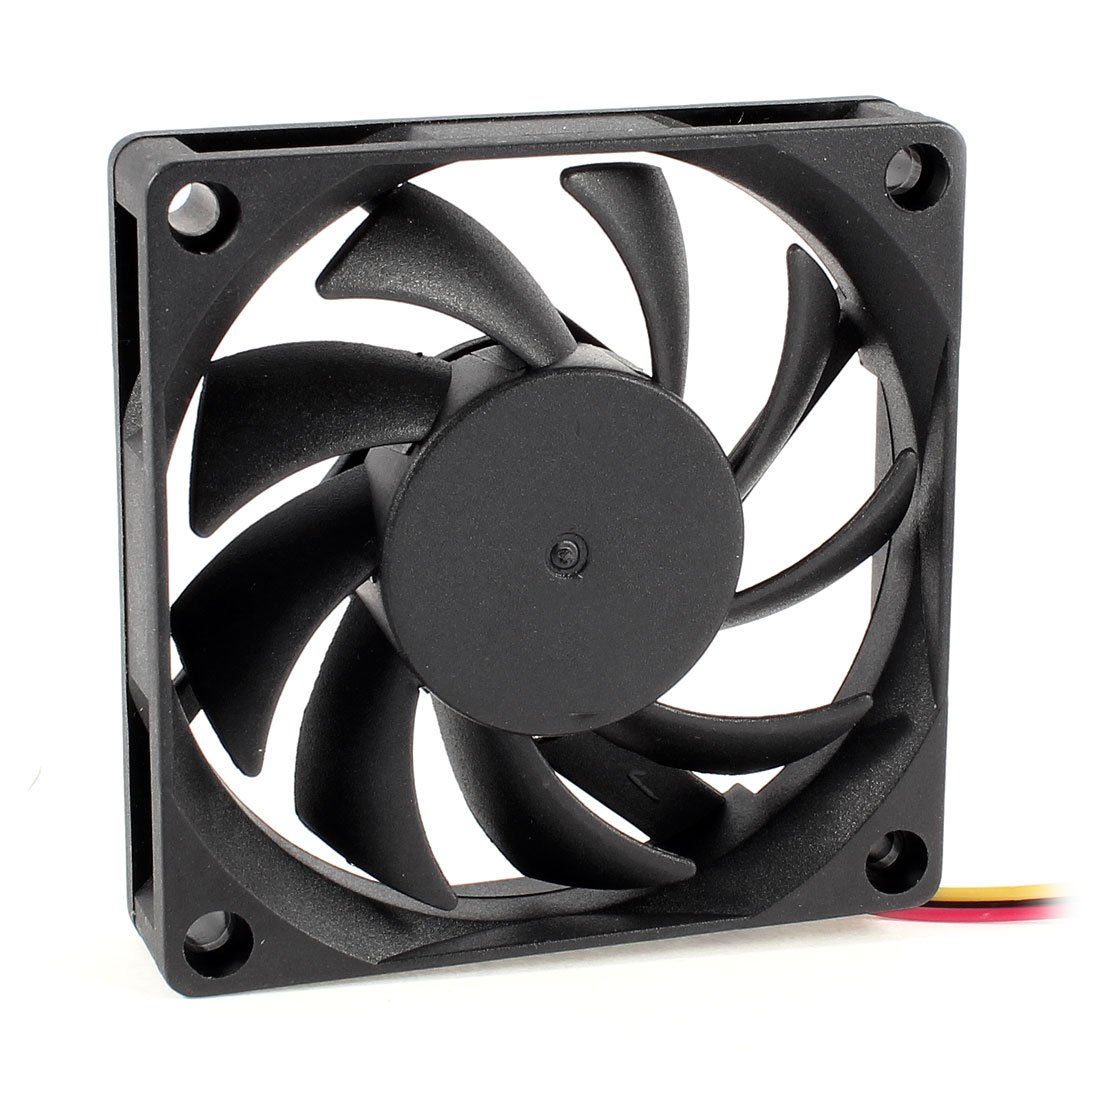 70x70mm 12V 3-Pin PC Computer Case CPU DC Brushless Cooler Fan Black 2016 New